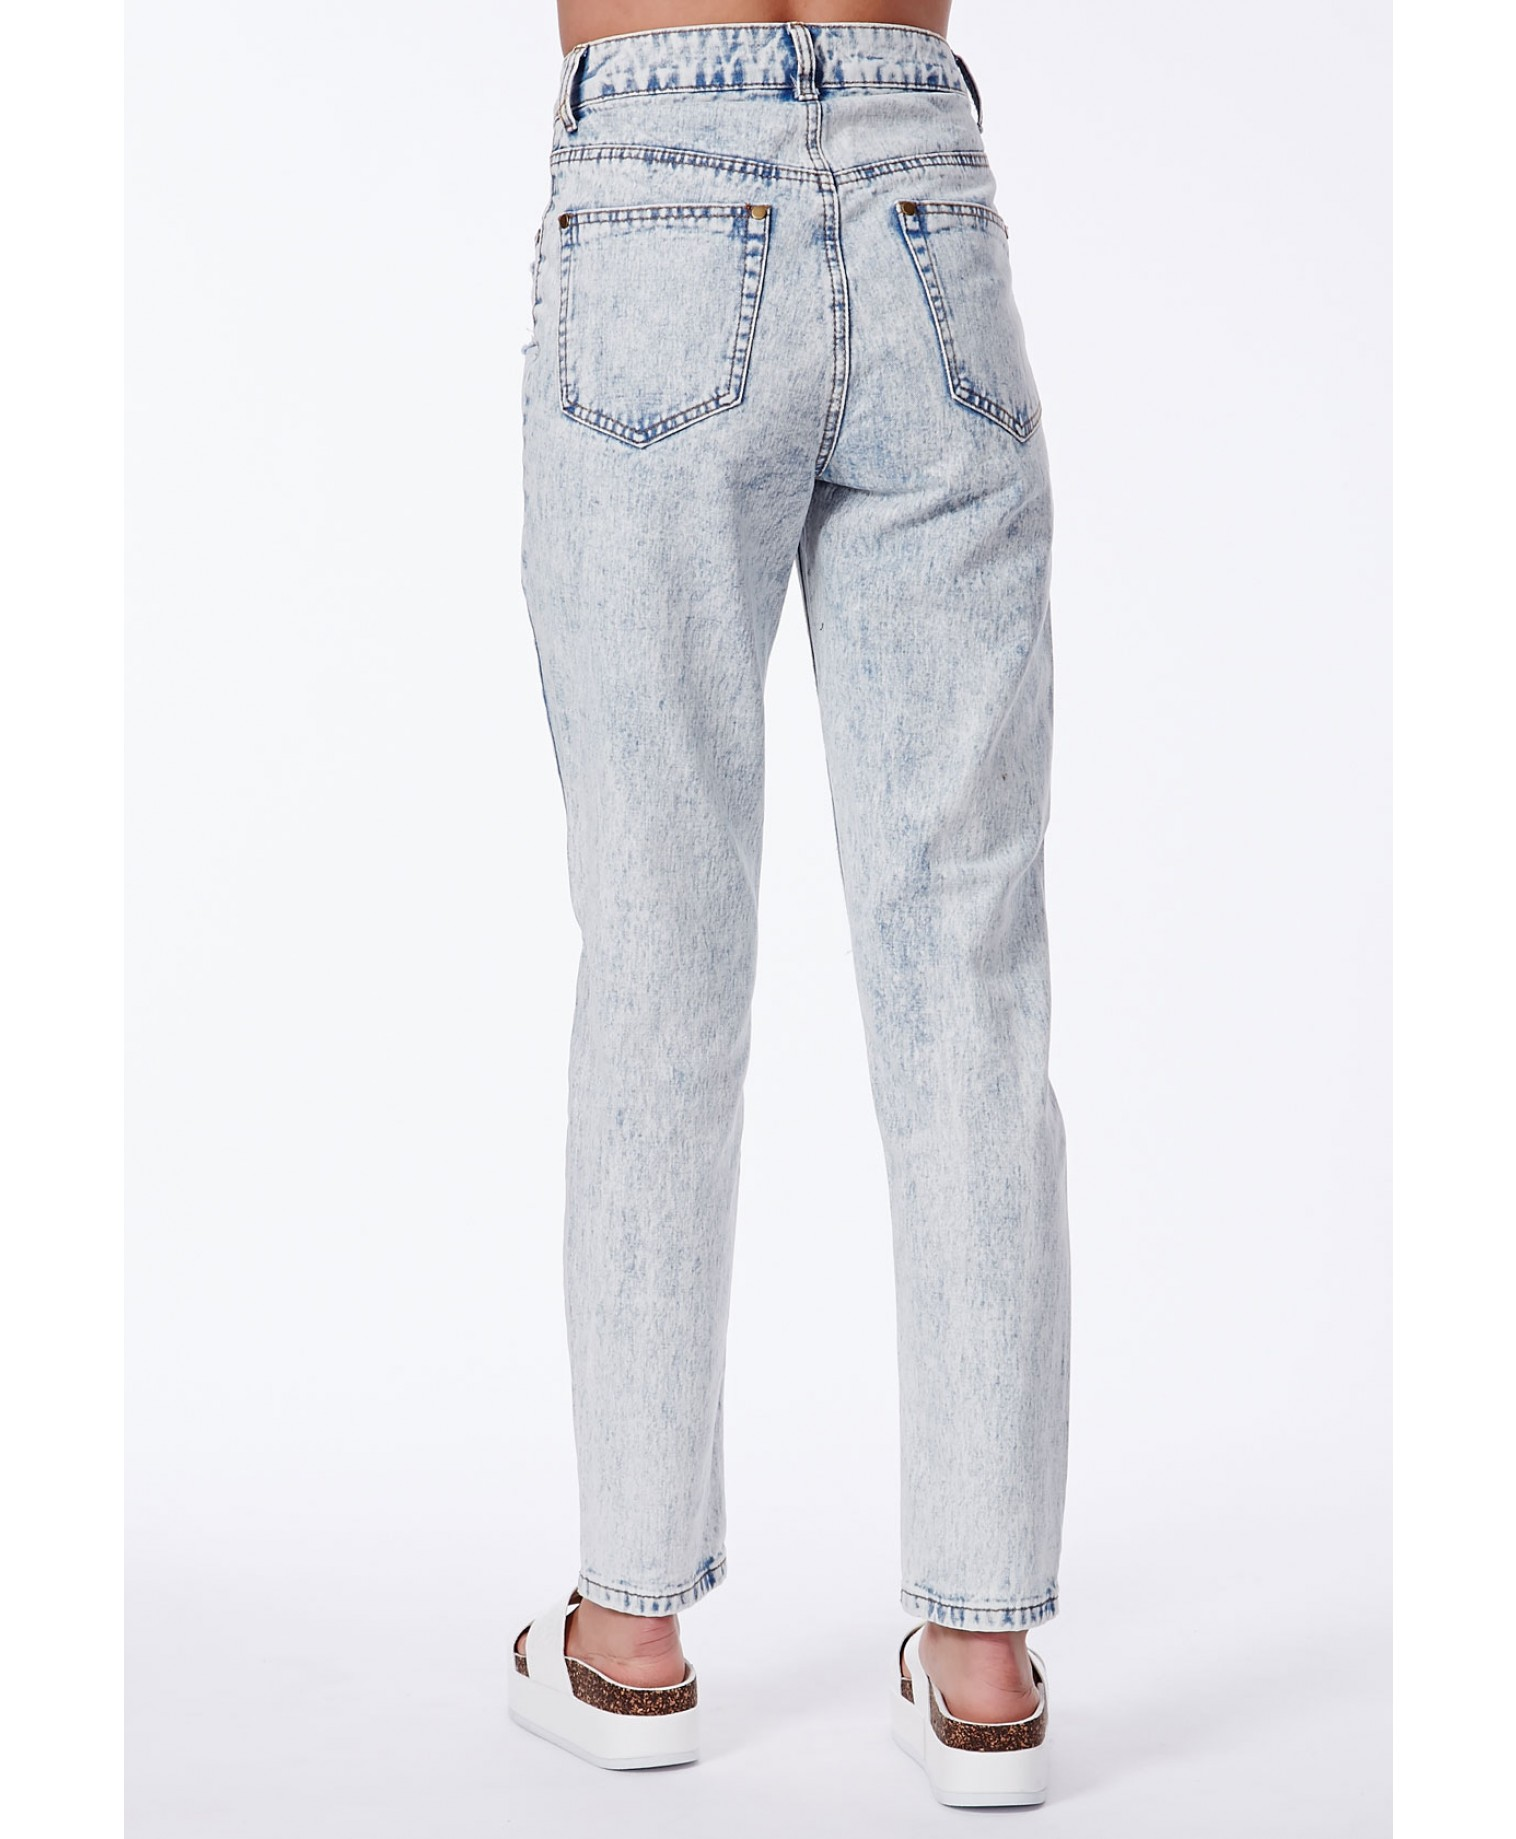 Wanetta ripped acid wash mom jeans